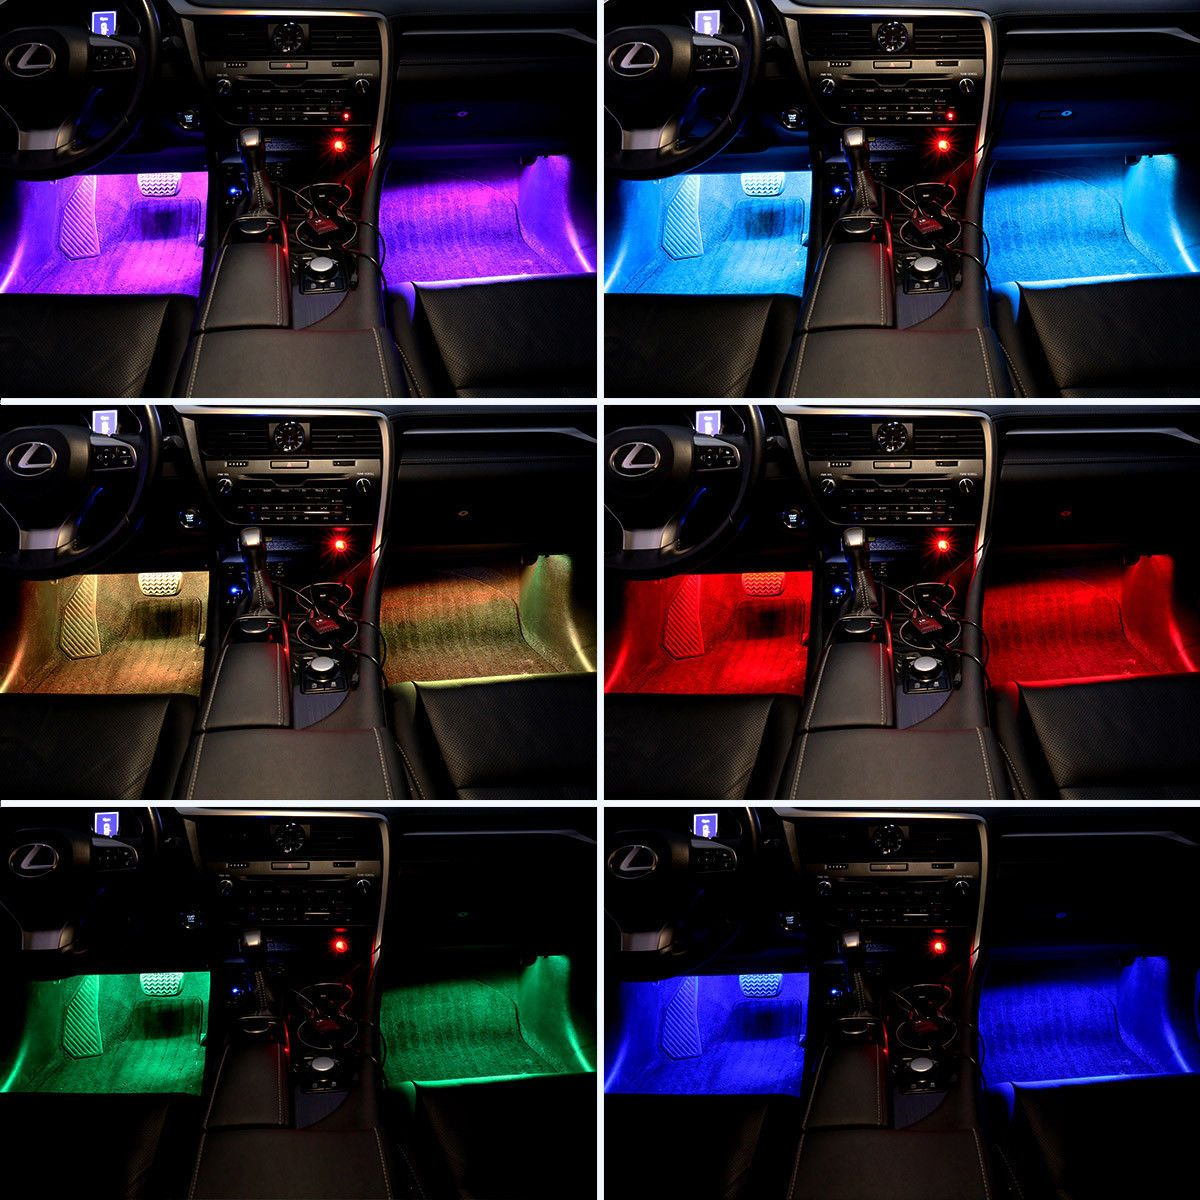 Led Rgb Ambient Lighting Interior Lighting Footwell Lighting X 4 Ideer